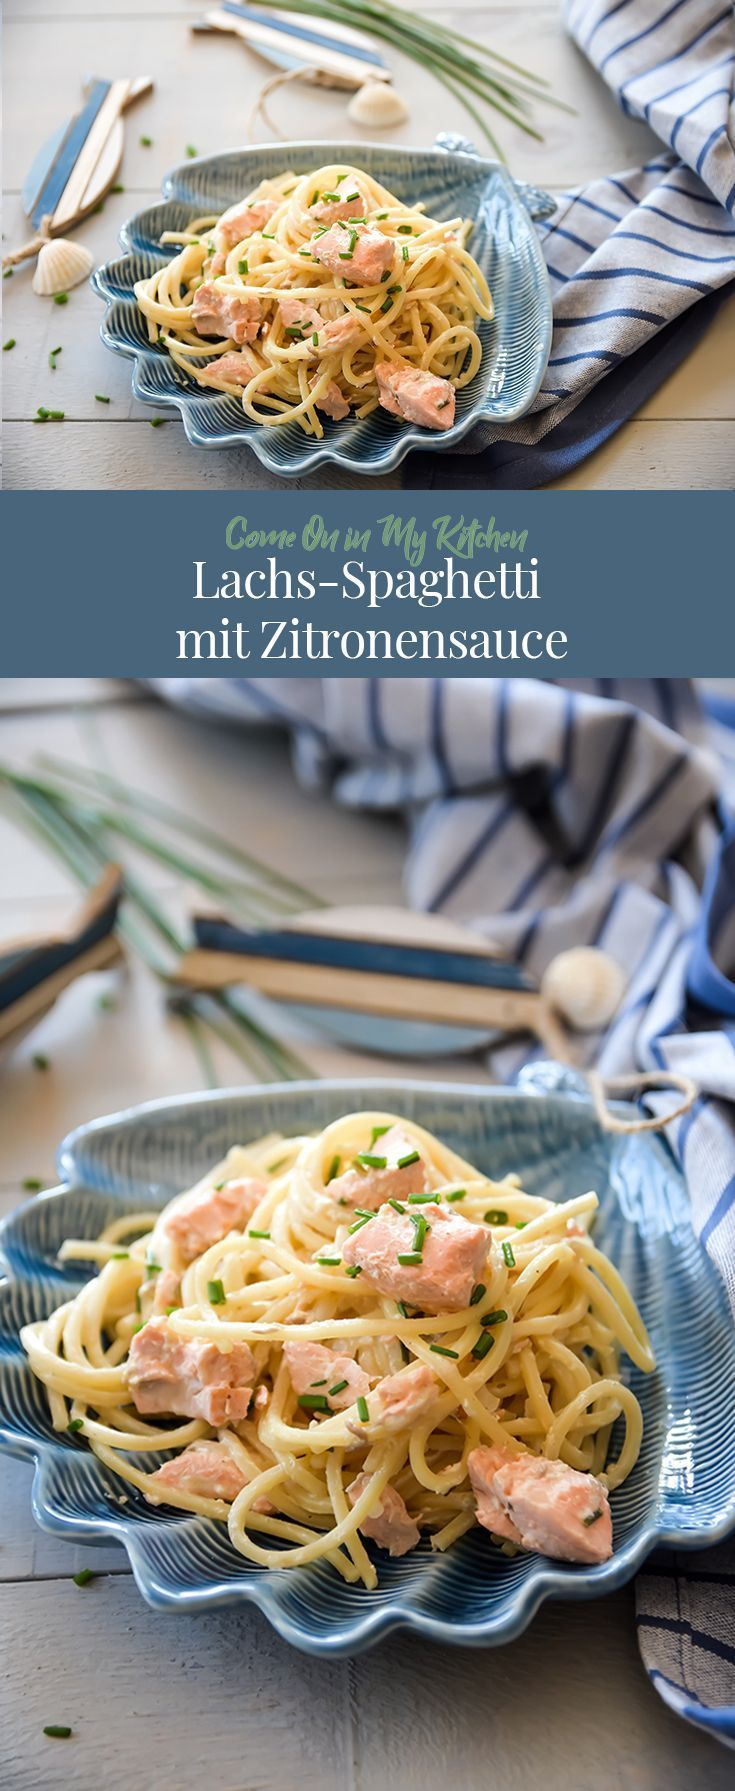 Salmon spaghetti with lemon sauce - Home and Herbs -  Pasta with salmon in lemon sauce  -